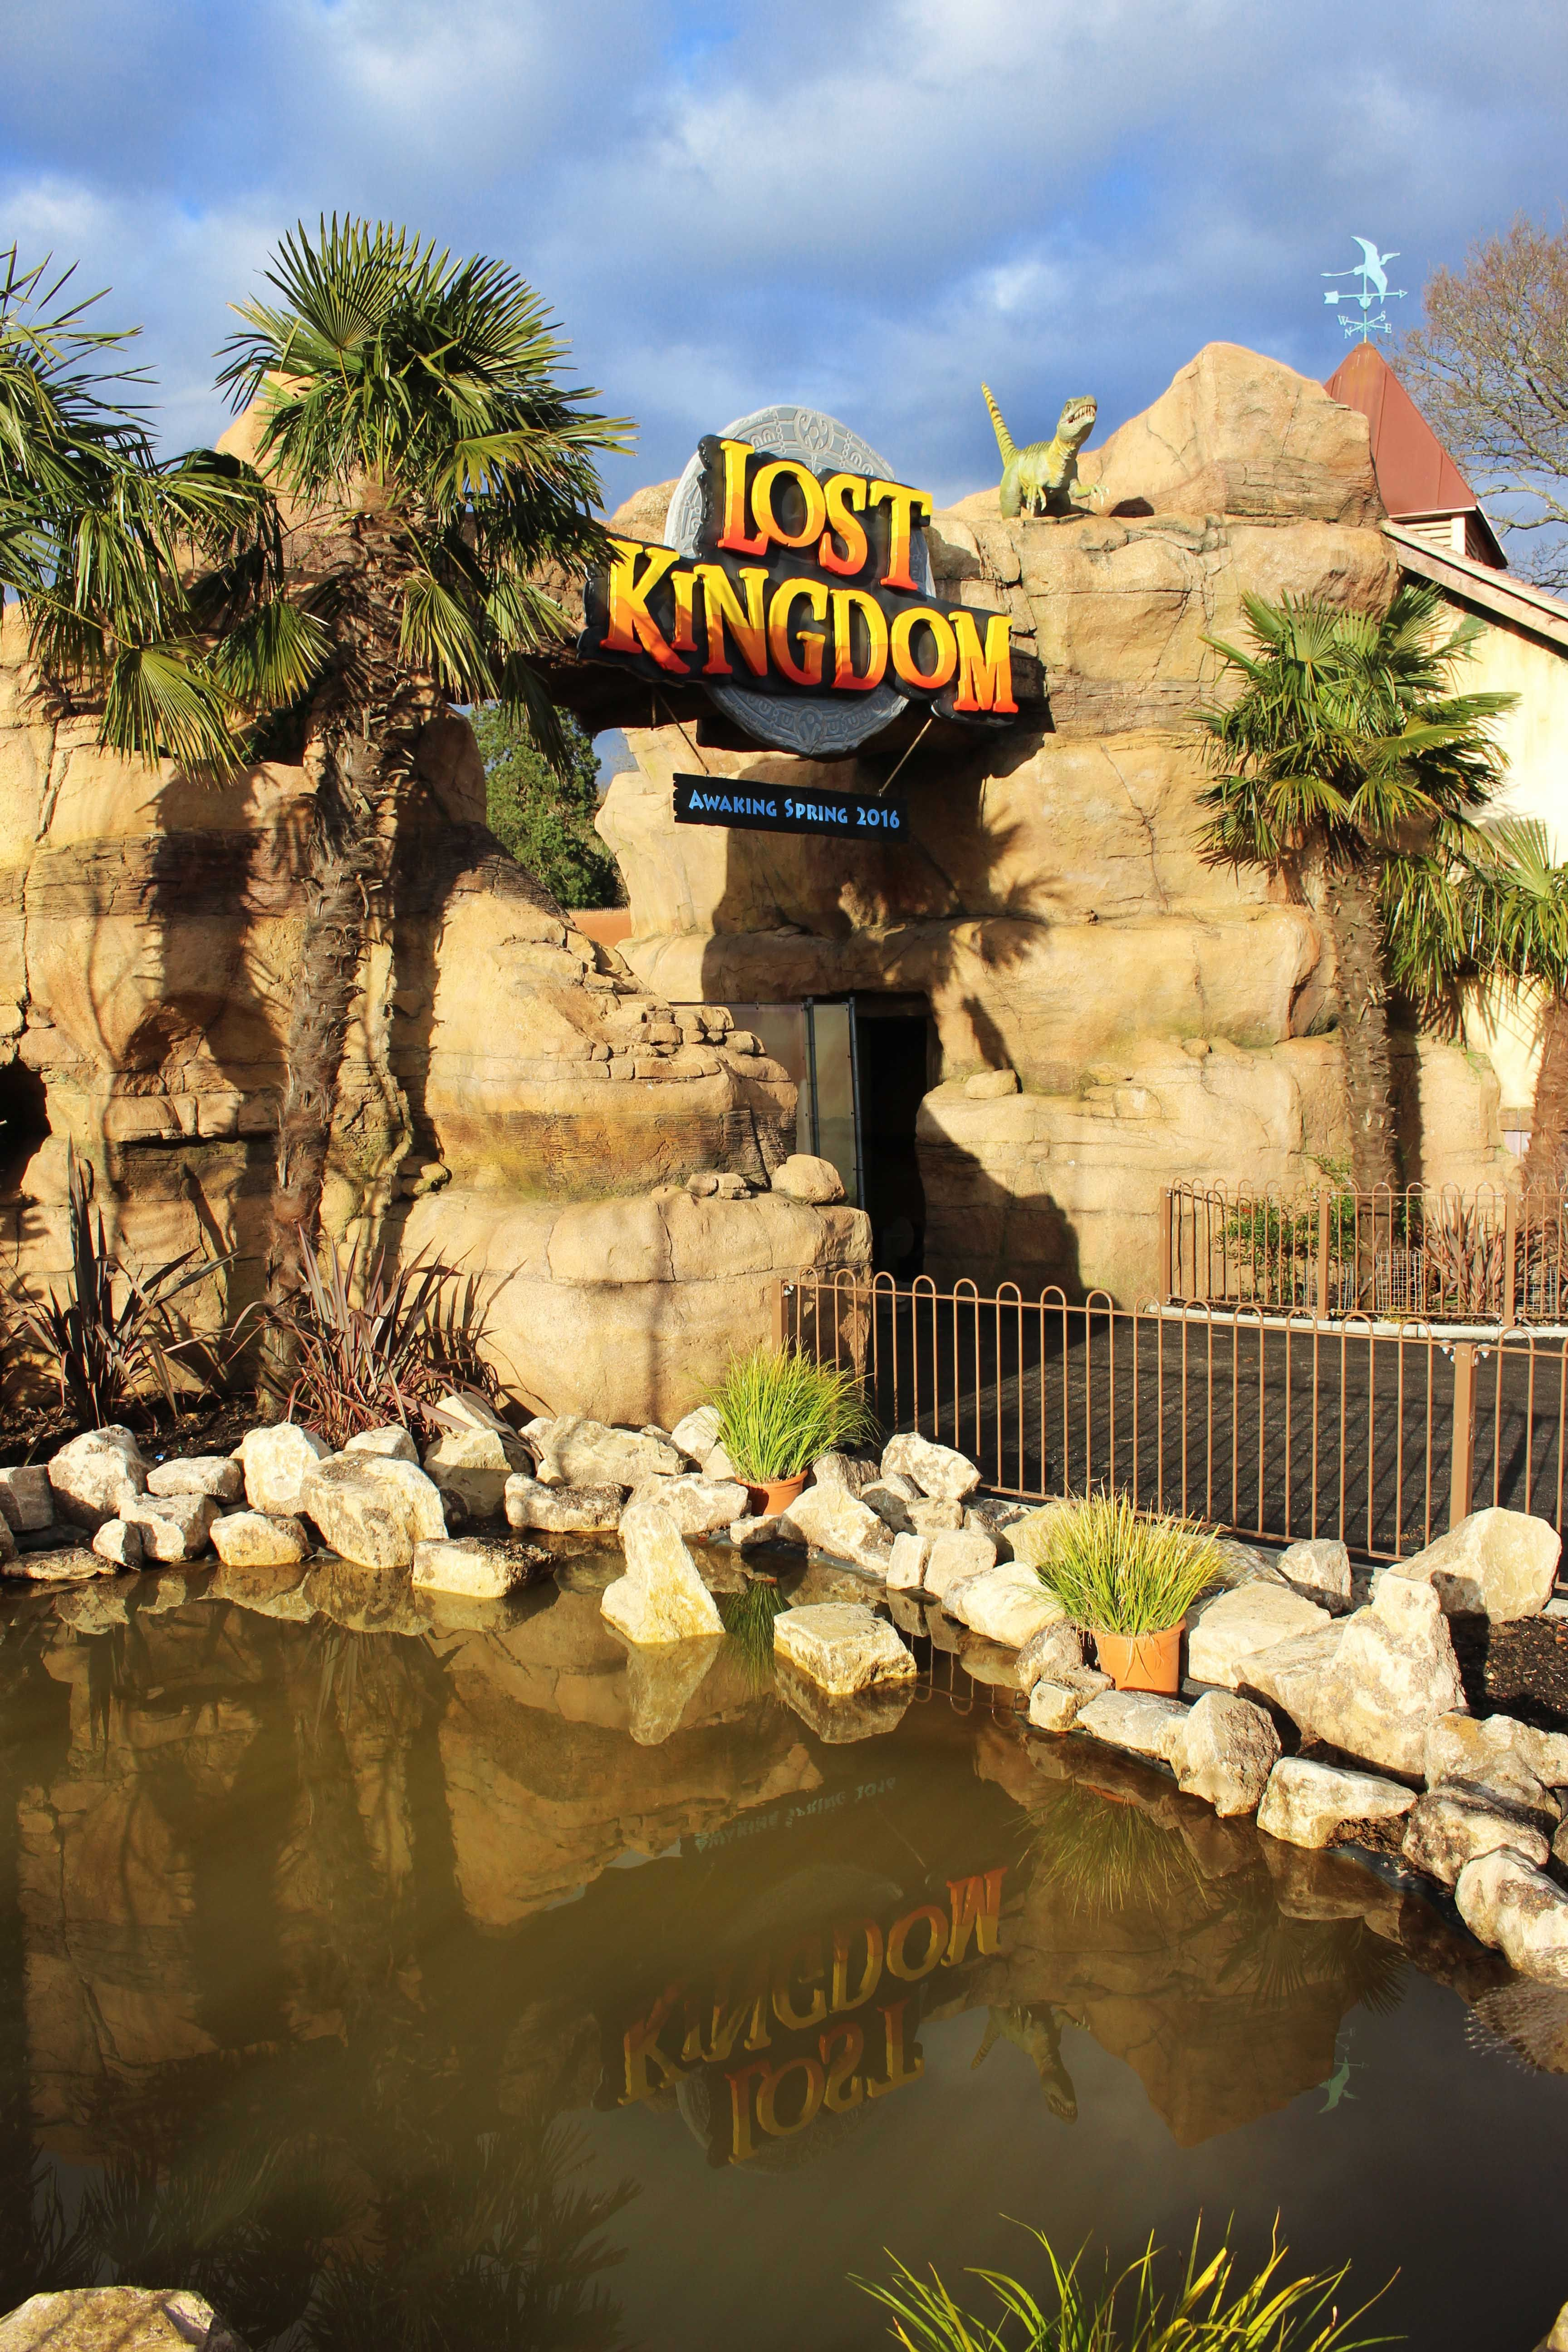 The entrance arch to Lost Kingdom Dinosaur Theme Park at Paultons ...